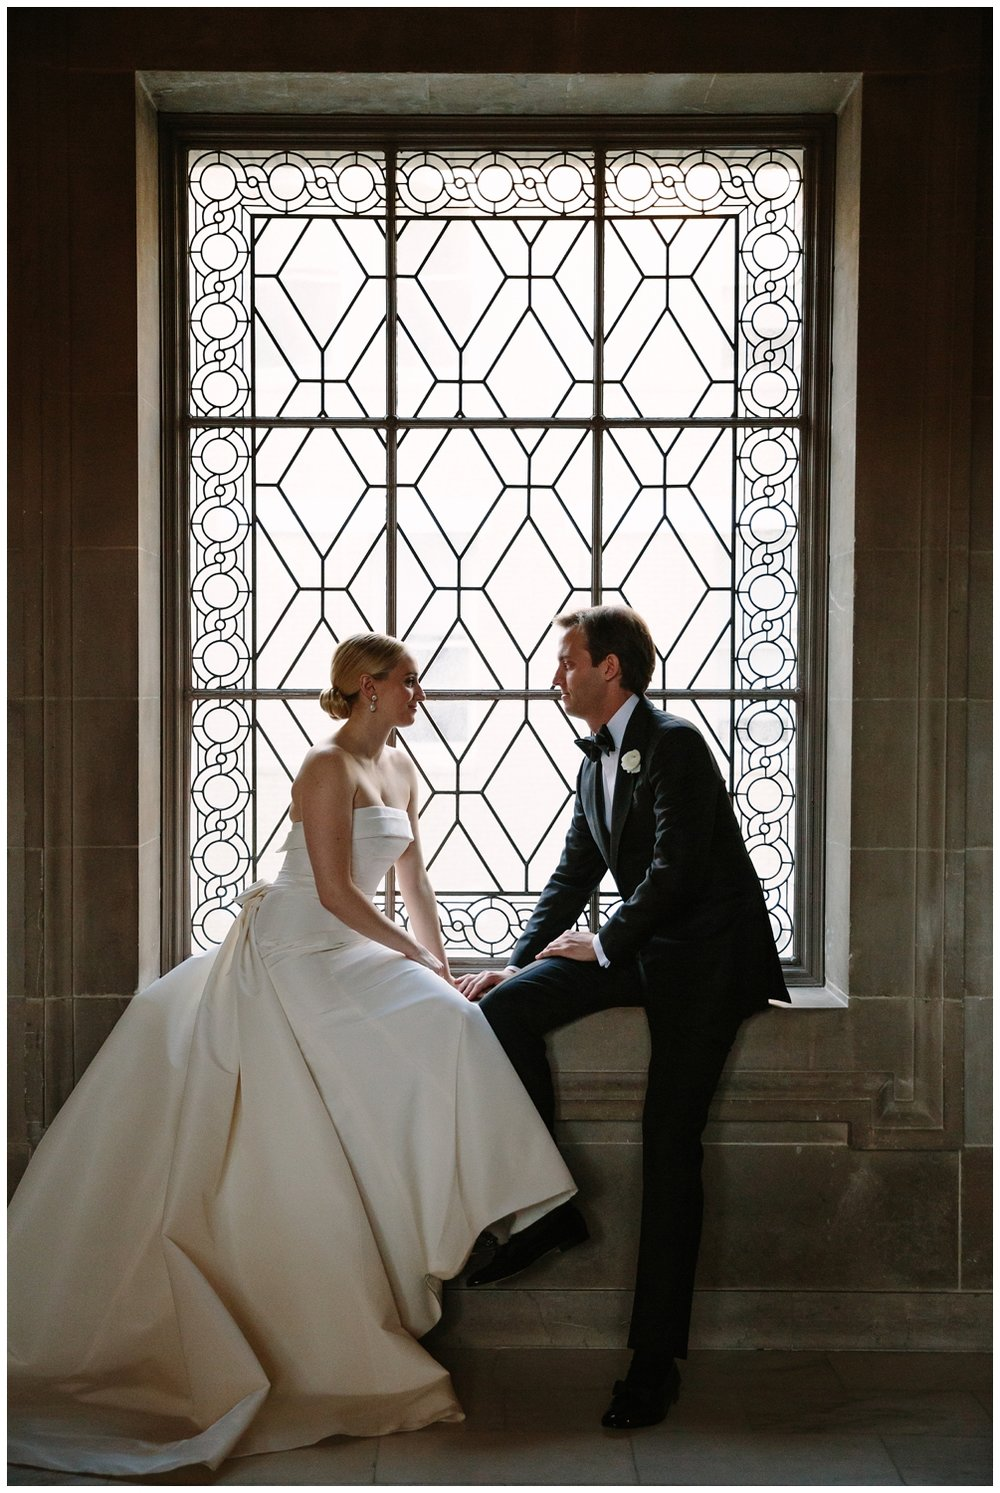 LCphoto-SS-wedding-preview-193_WEB.jpg